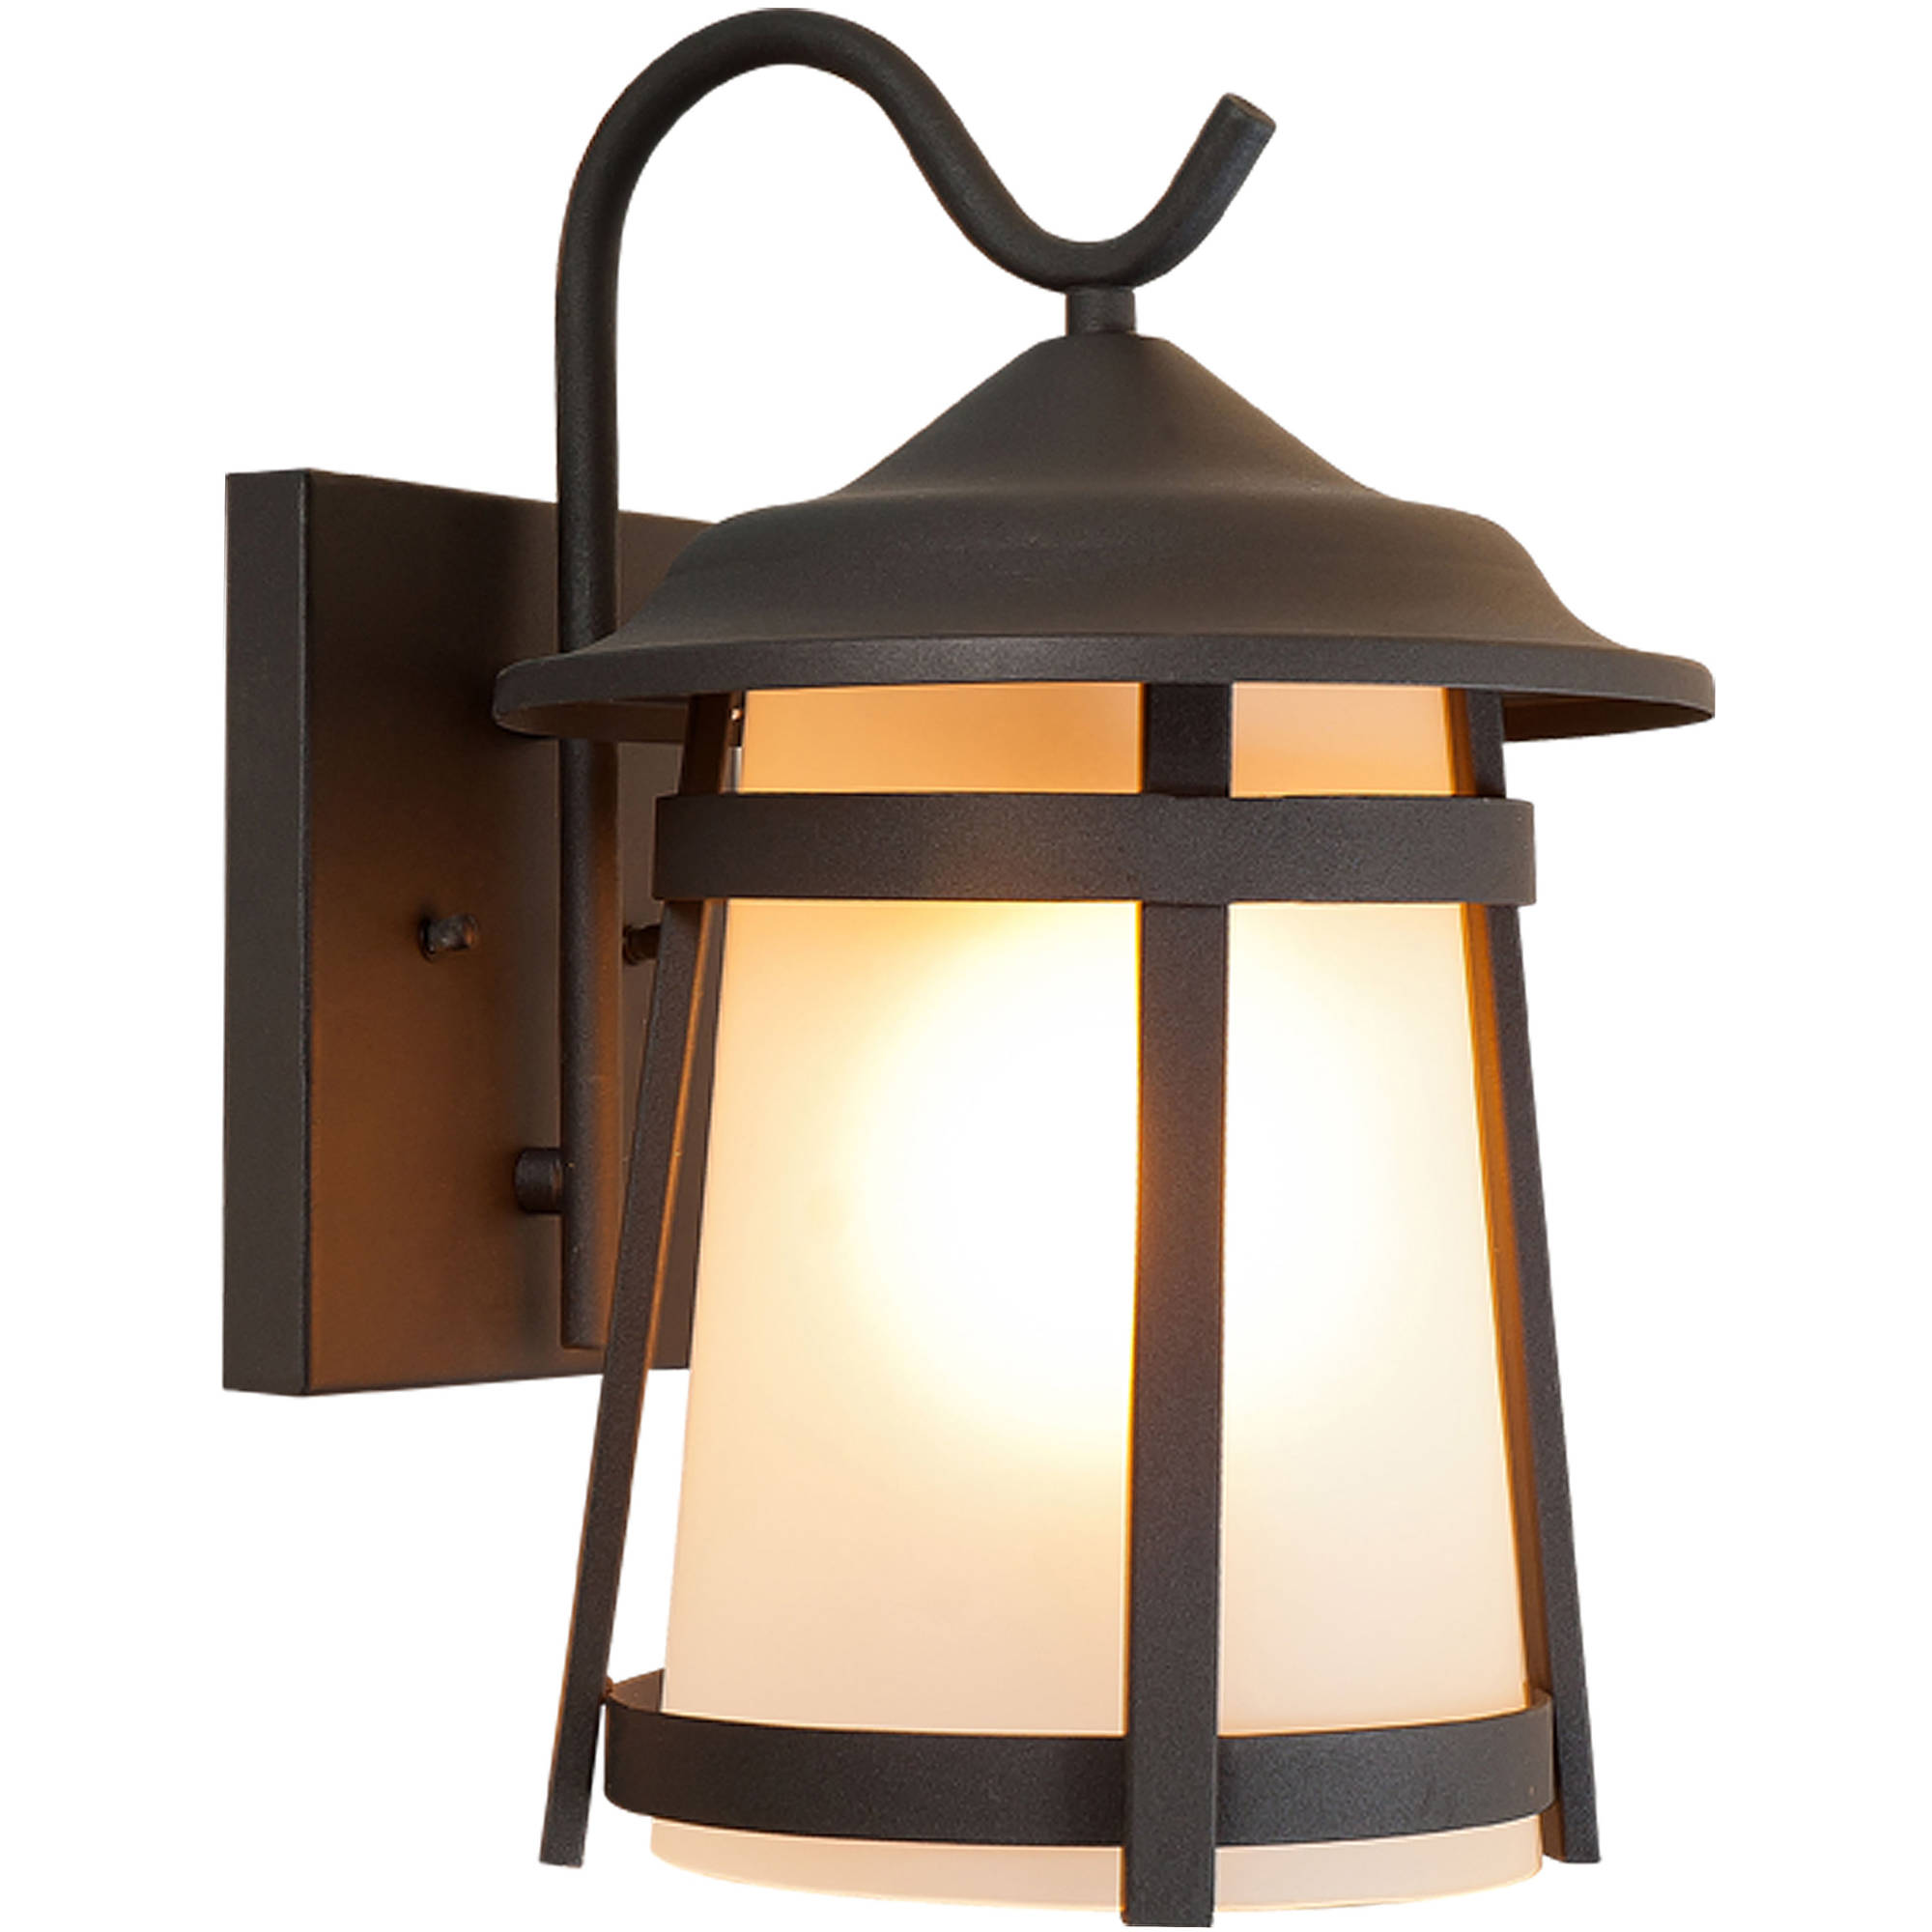 High Quality Litex Industries Outdoors Wall Lighting Litex Outdoor Wall Light Fixture,  Sandy Black Finish, Coach Lamp, 2 Pack   Walmart.com